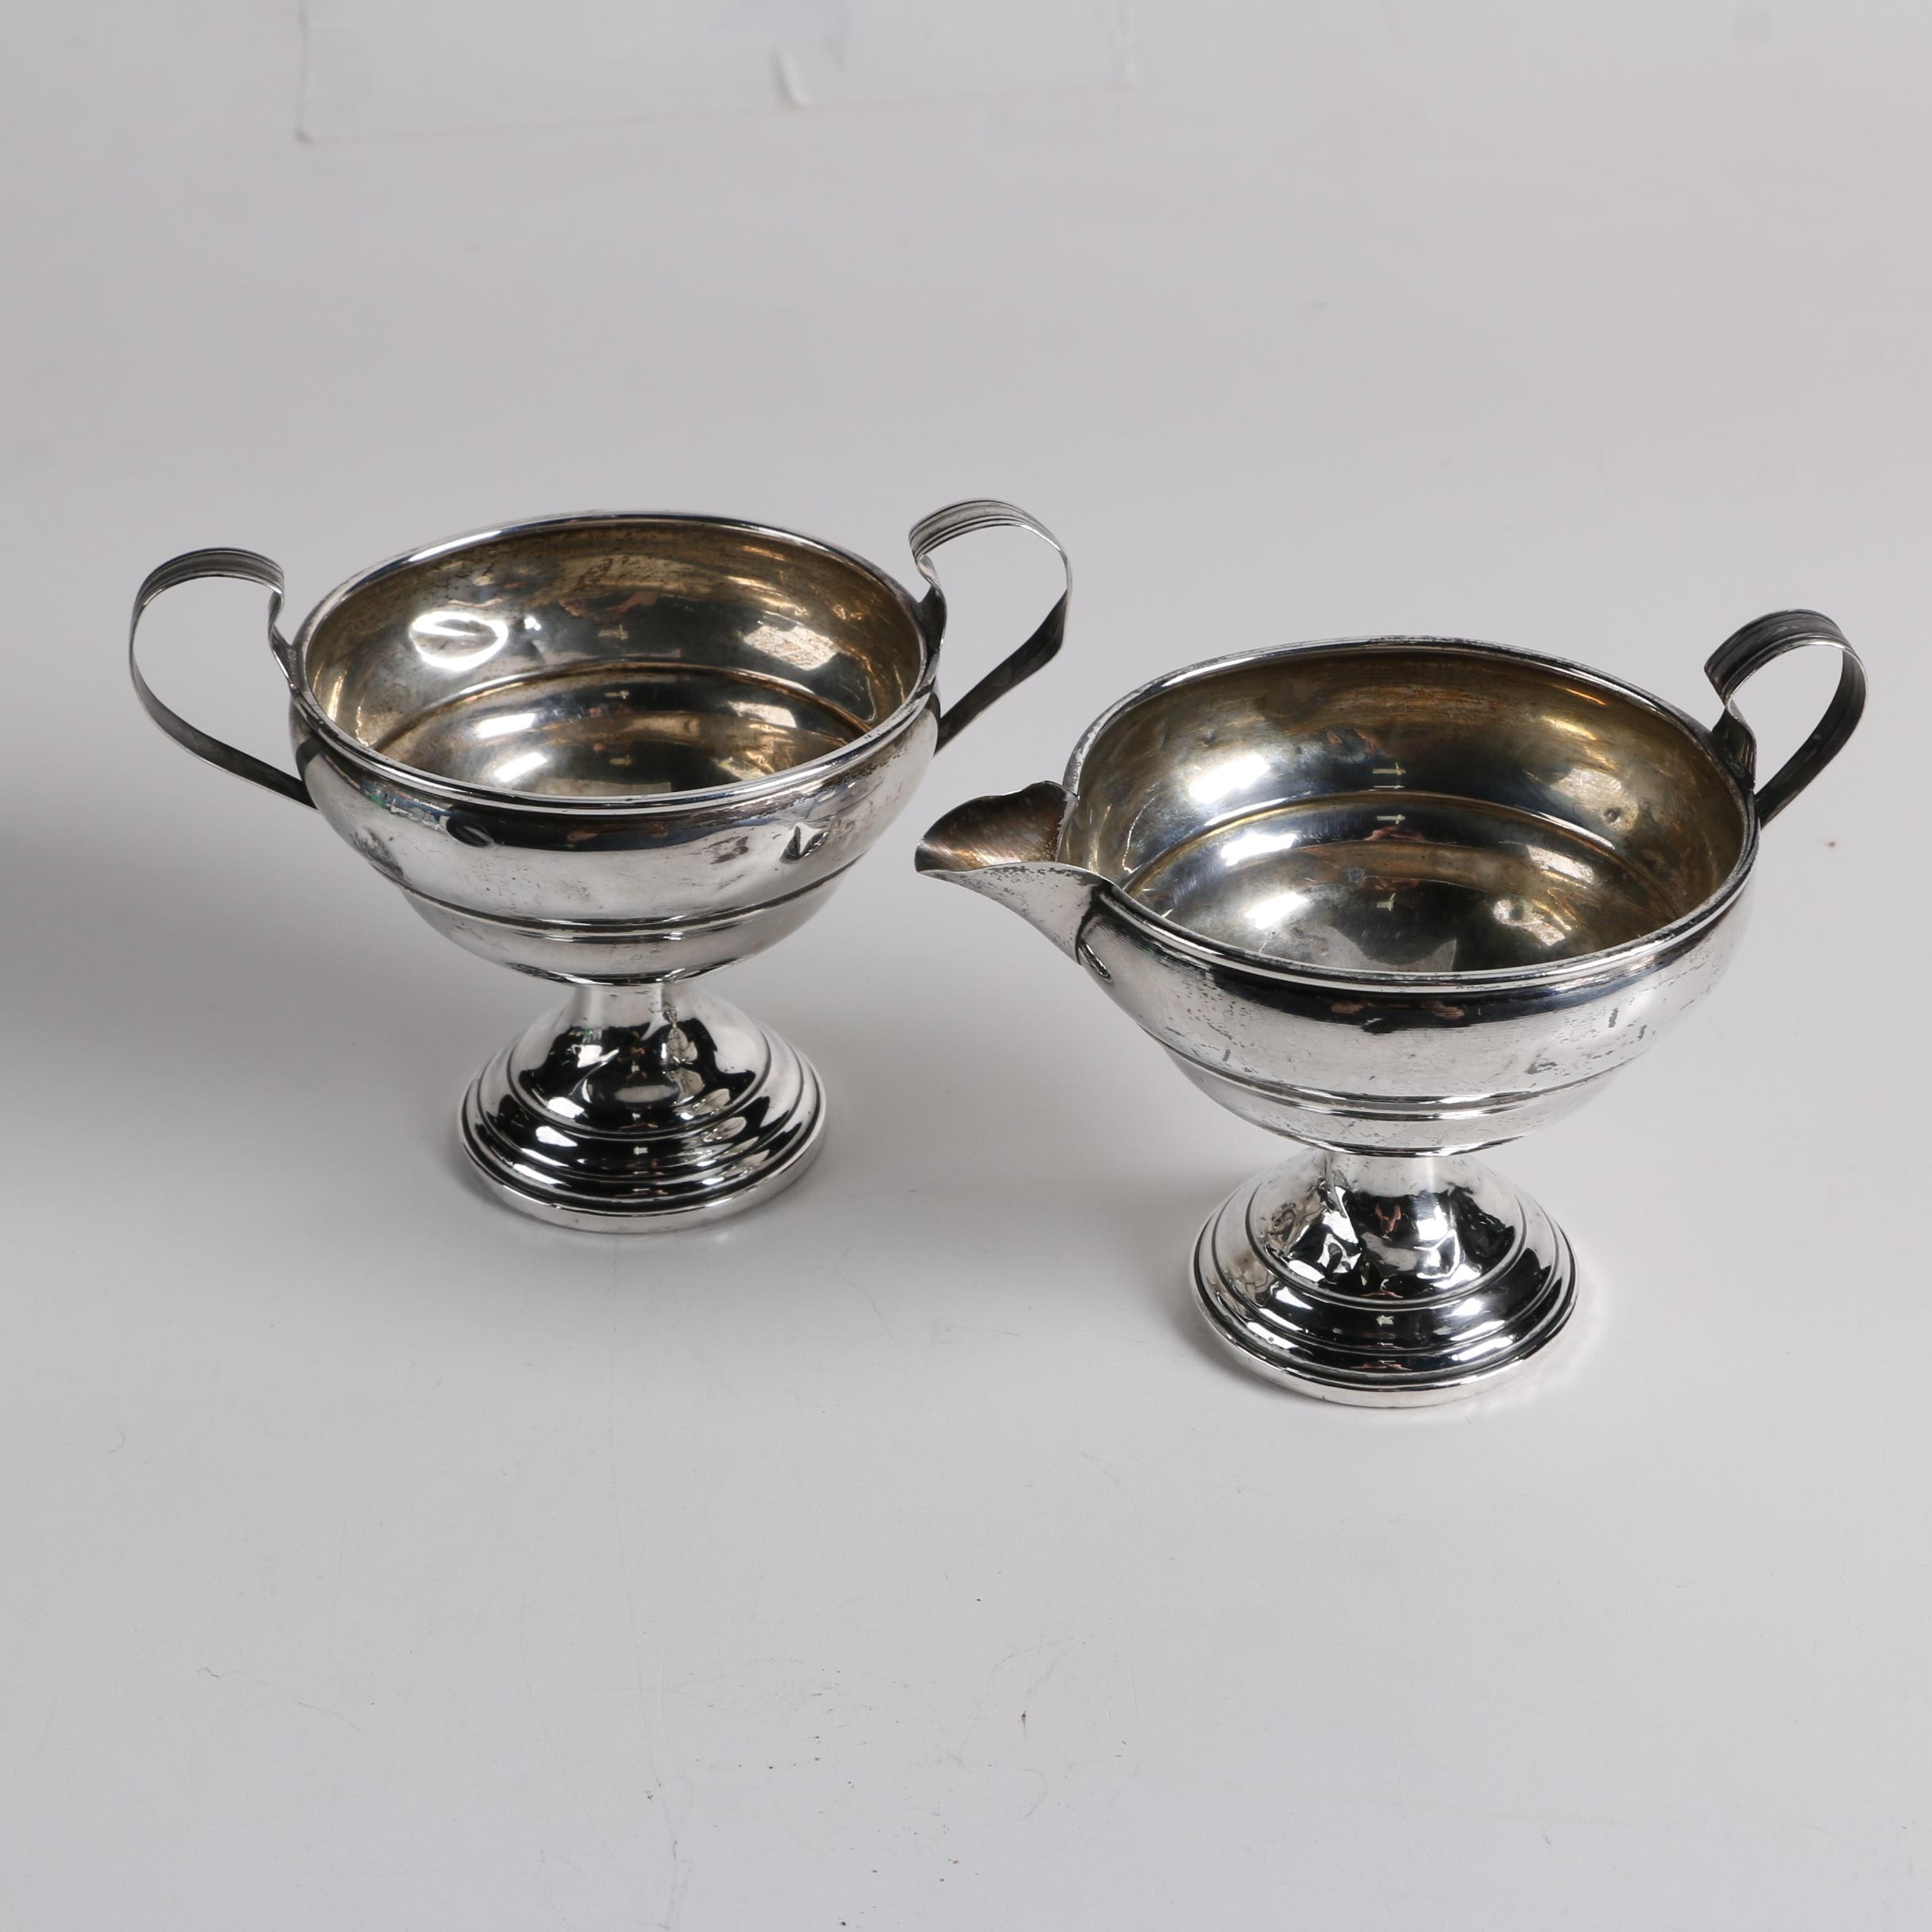 Elgin Silversmith Co. Weighted Sterling Sugar Bowl and Creamer Set